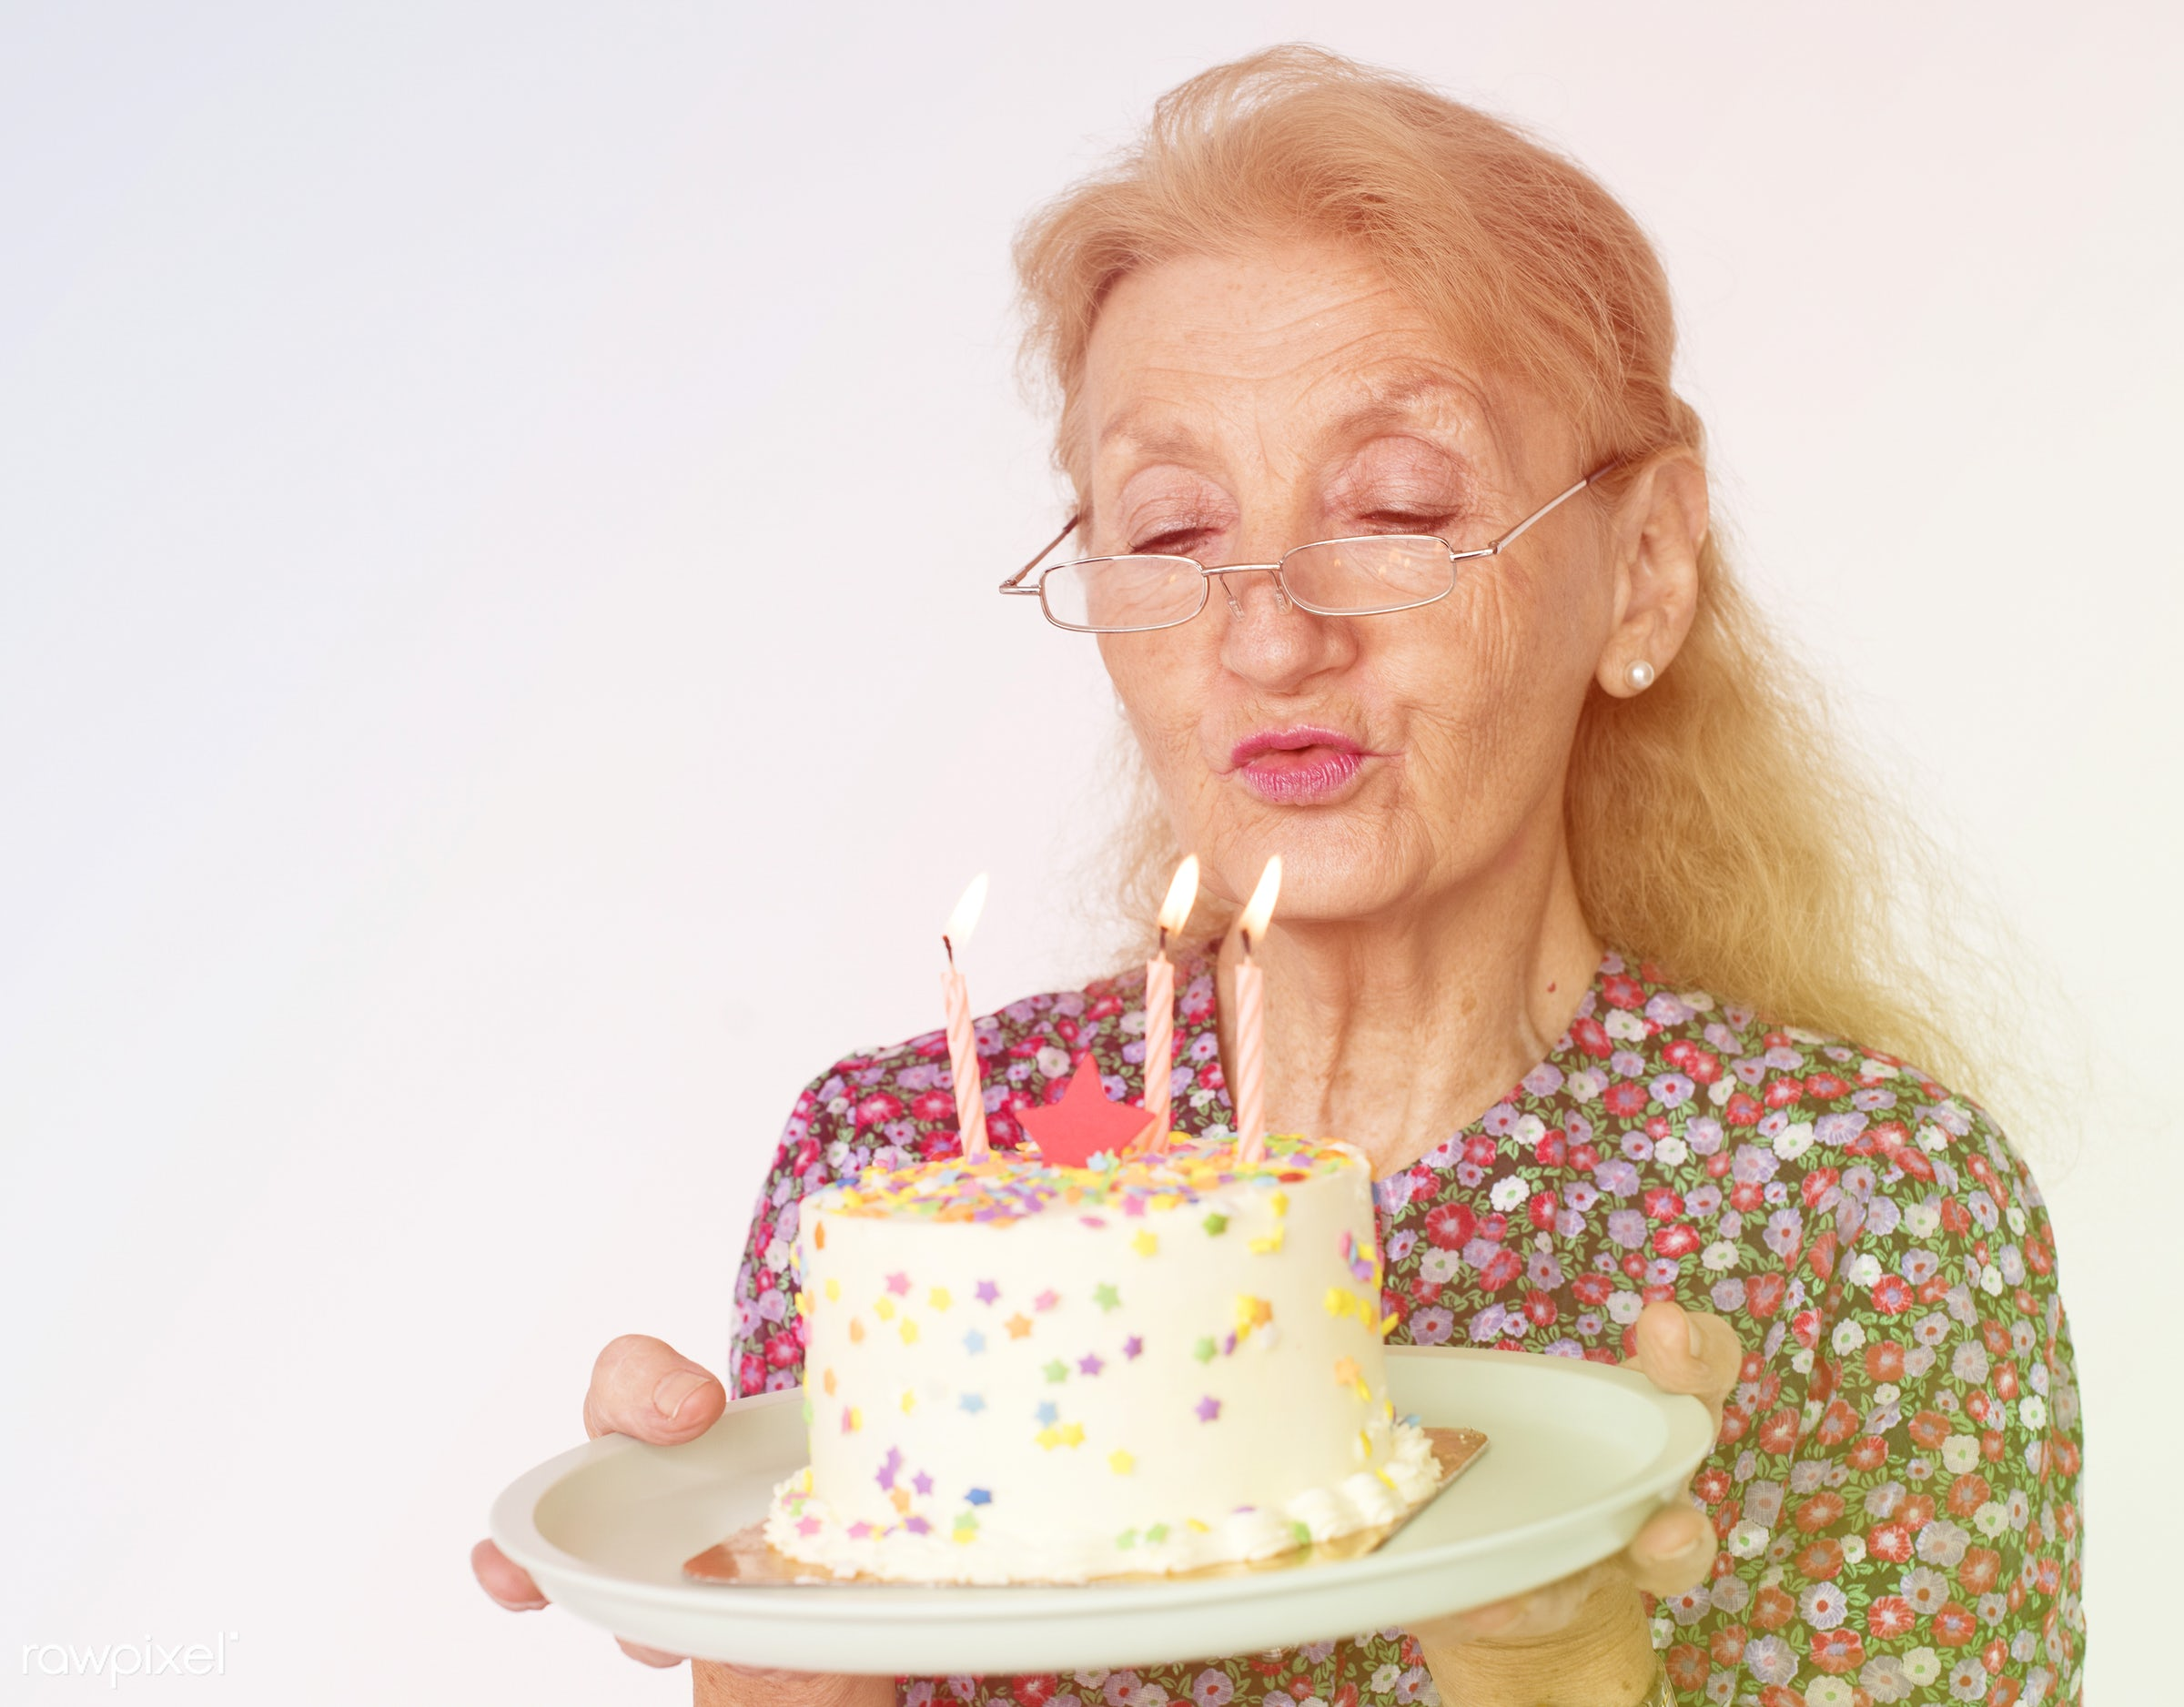 studio, expression, person, people, caucasian, woman, candles, lifestyle, smile, positive, cheerful, dessert, cake, isolated...